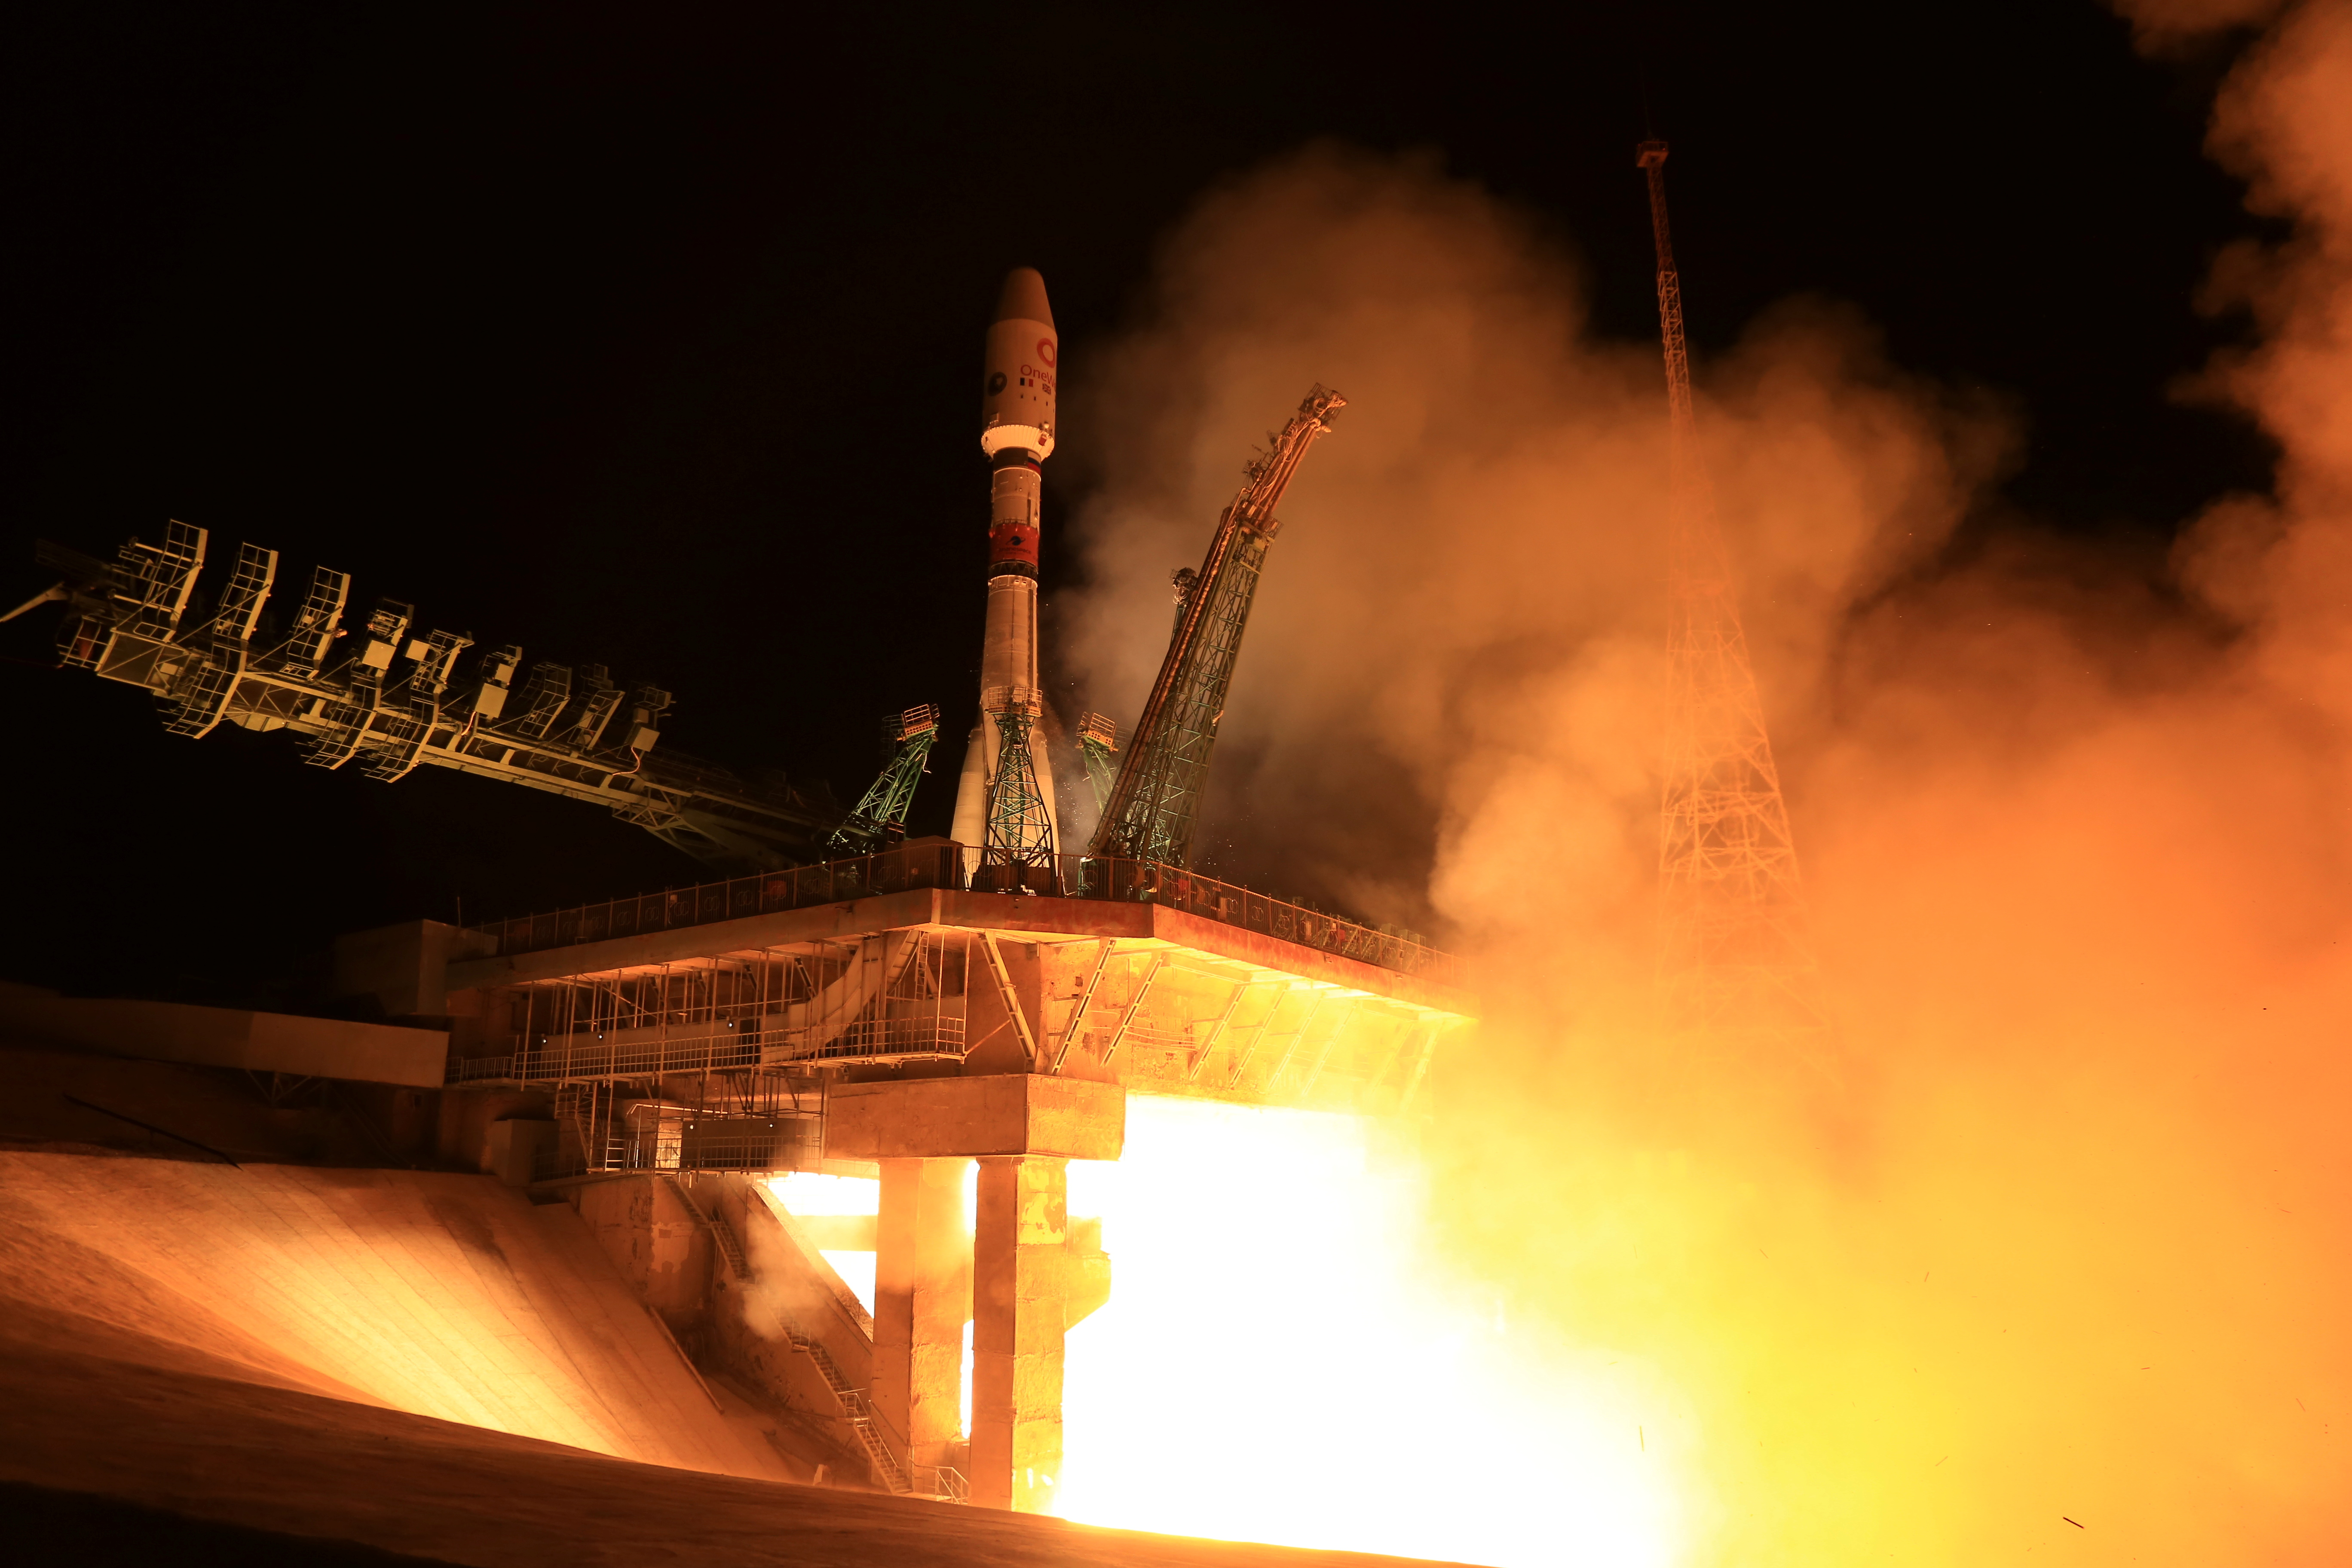 A Soyuz-2.1b rocket booster with a Fregat upper stage and satellites of British firm OneWeb blasts off from a launchpad at the Baikonur Cosmodrome, Kazakhstan September 14, 2021. Roscosmos/Handout via REUTERS